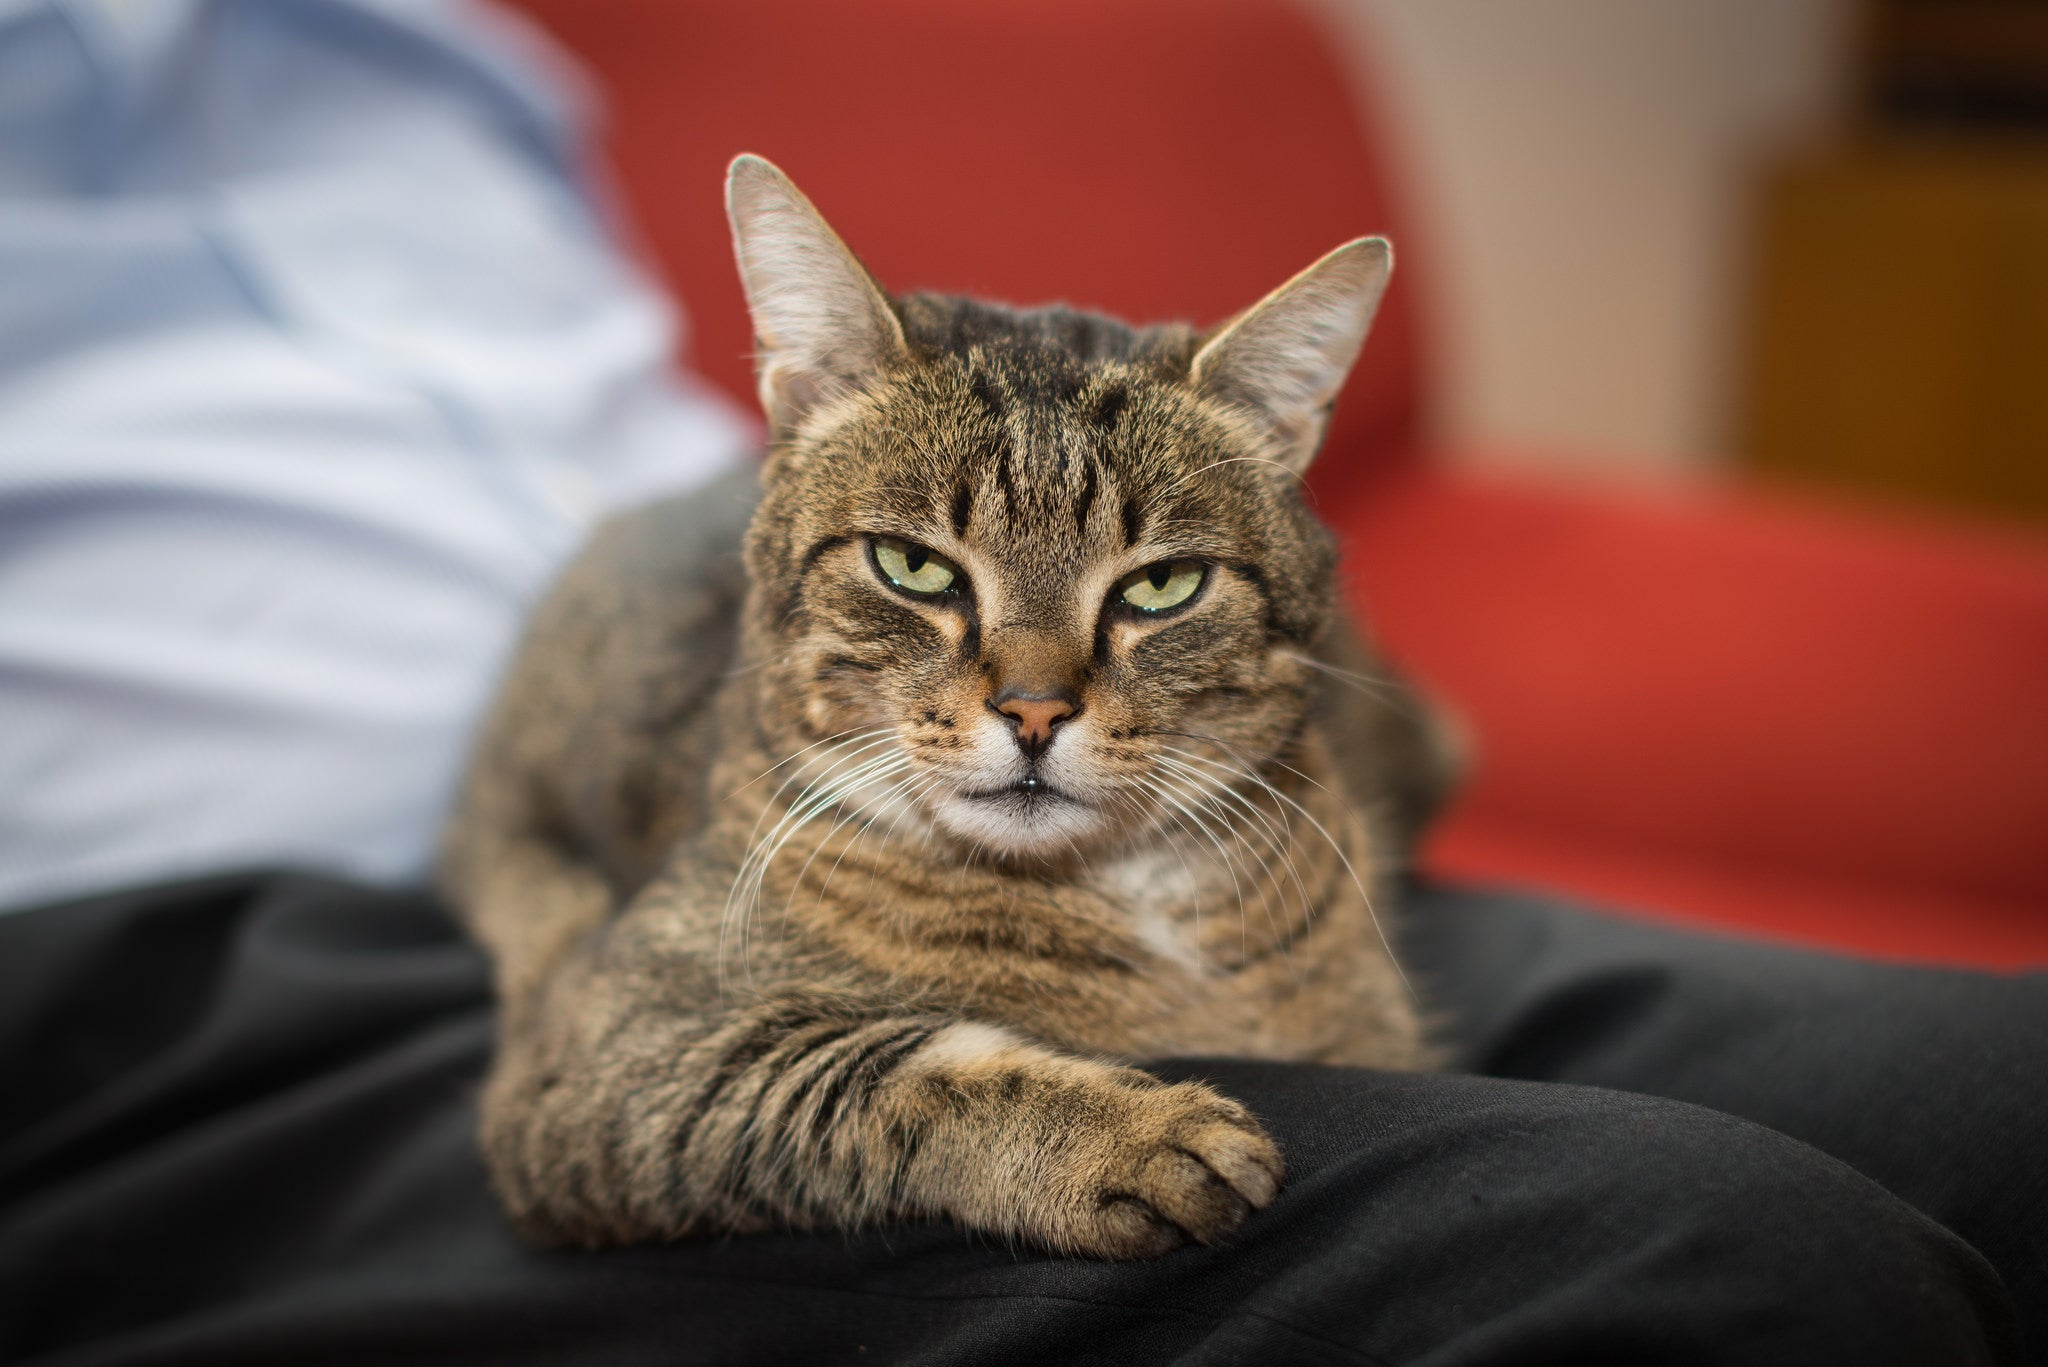 Cats May Understand Cause And Effect, Study Finds